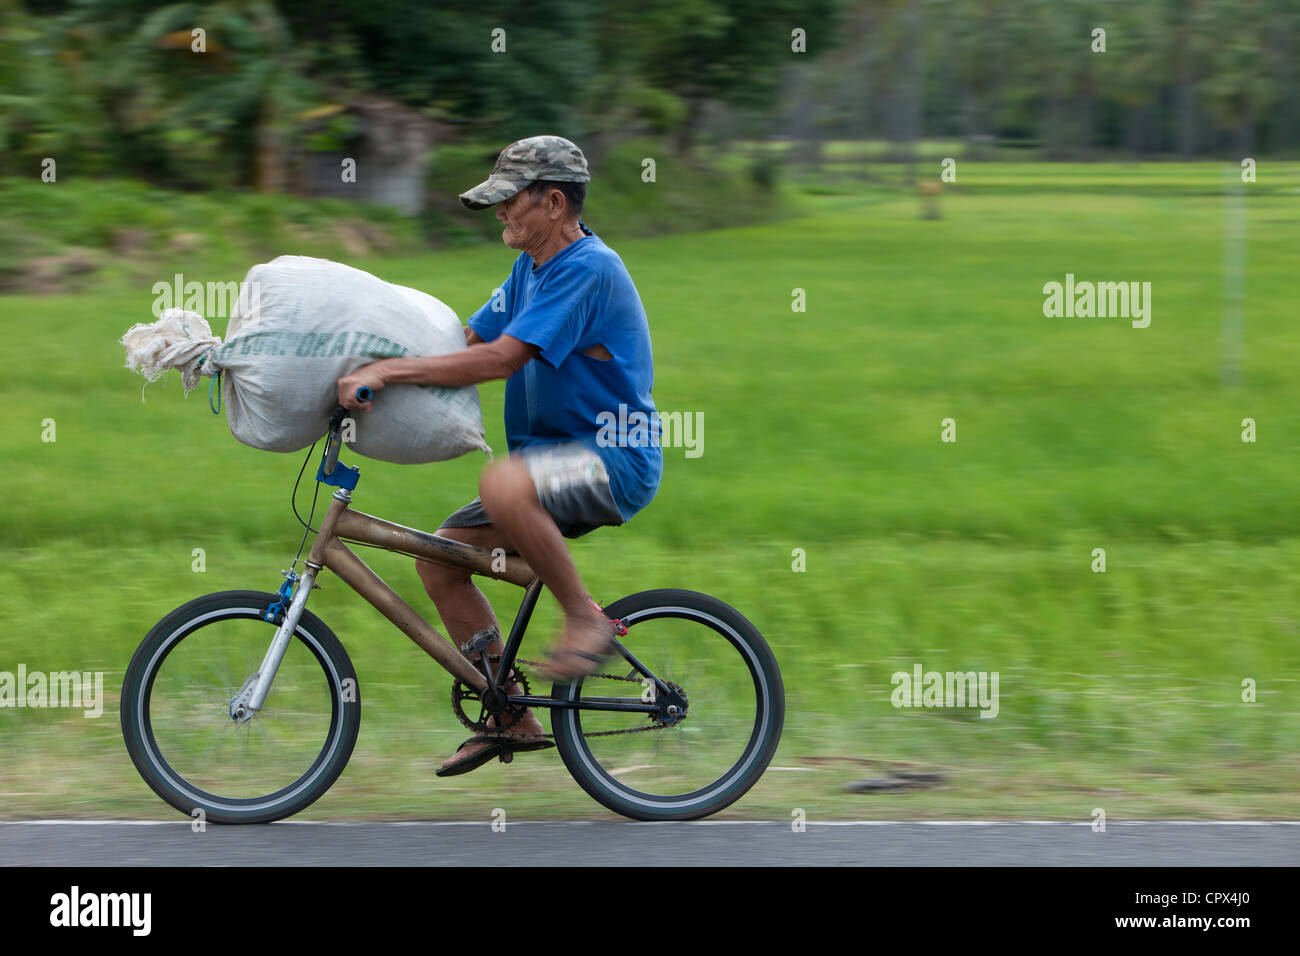 a man carrying a sack of rice on a bike, Negros, Philippines - Stock Image